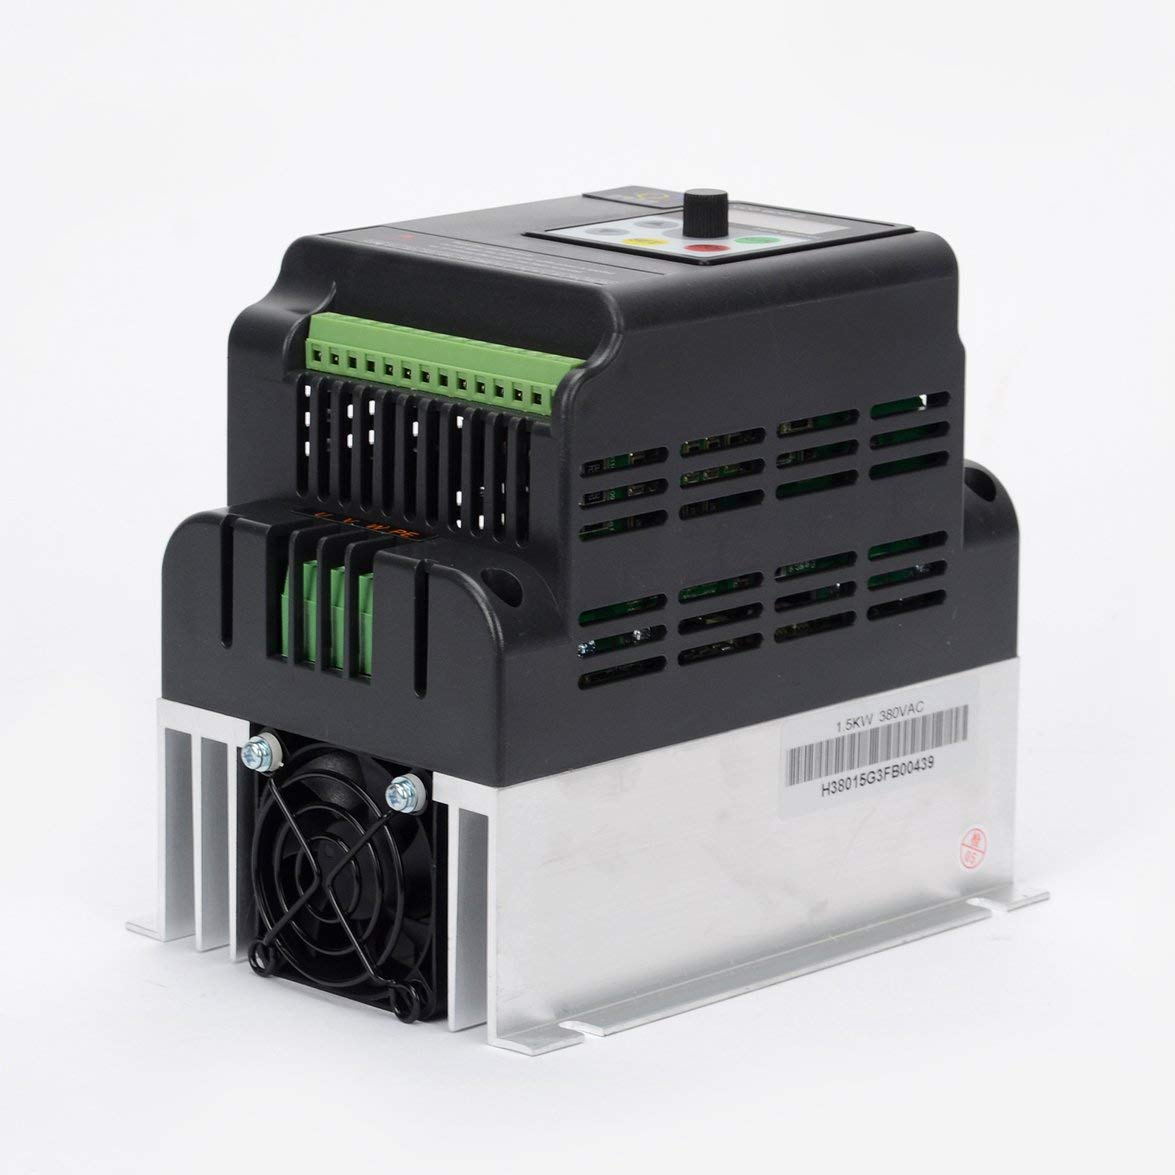 MqbY 0.75KW/1.5KW/2.2KW/3.0KW Frequency Inverter Spindle Driver Frequency Converter